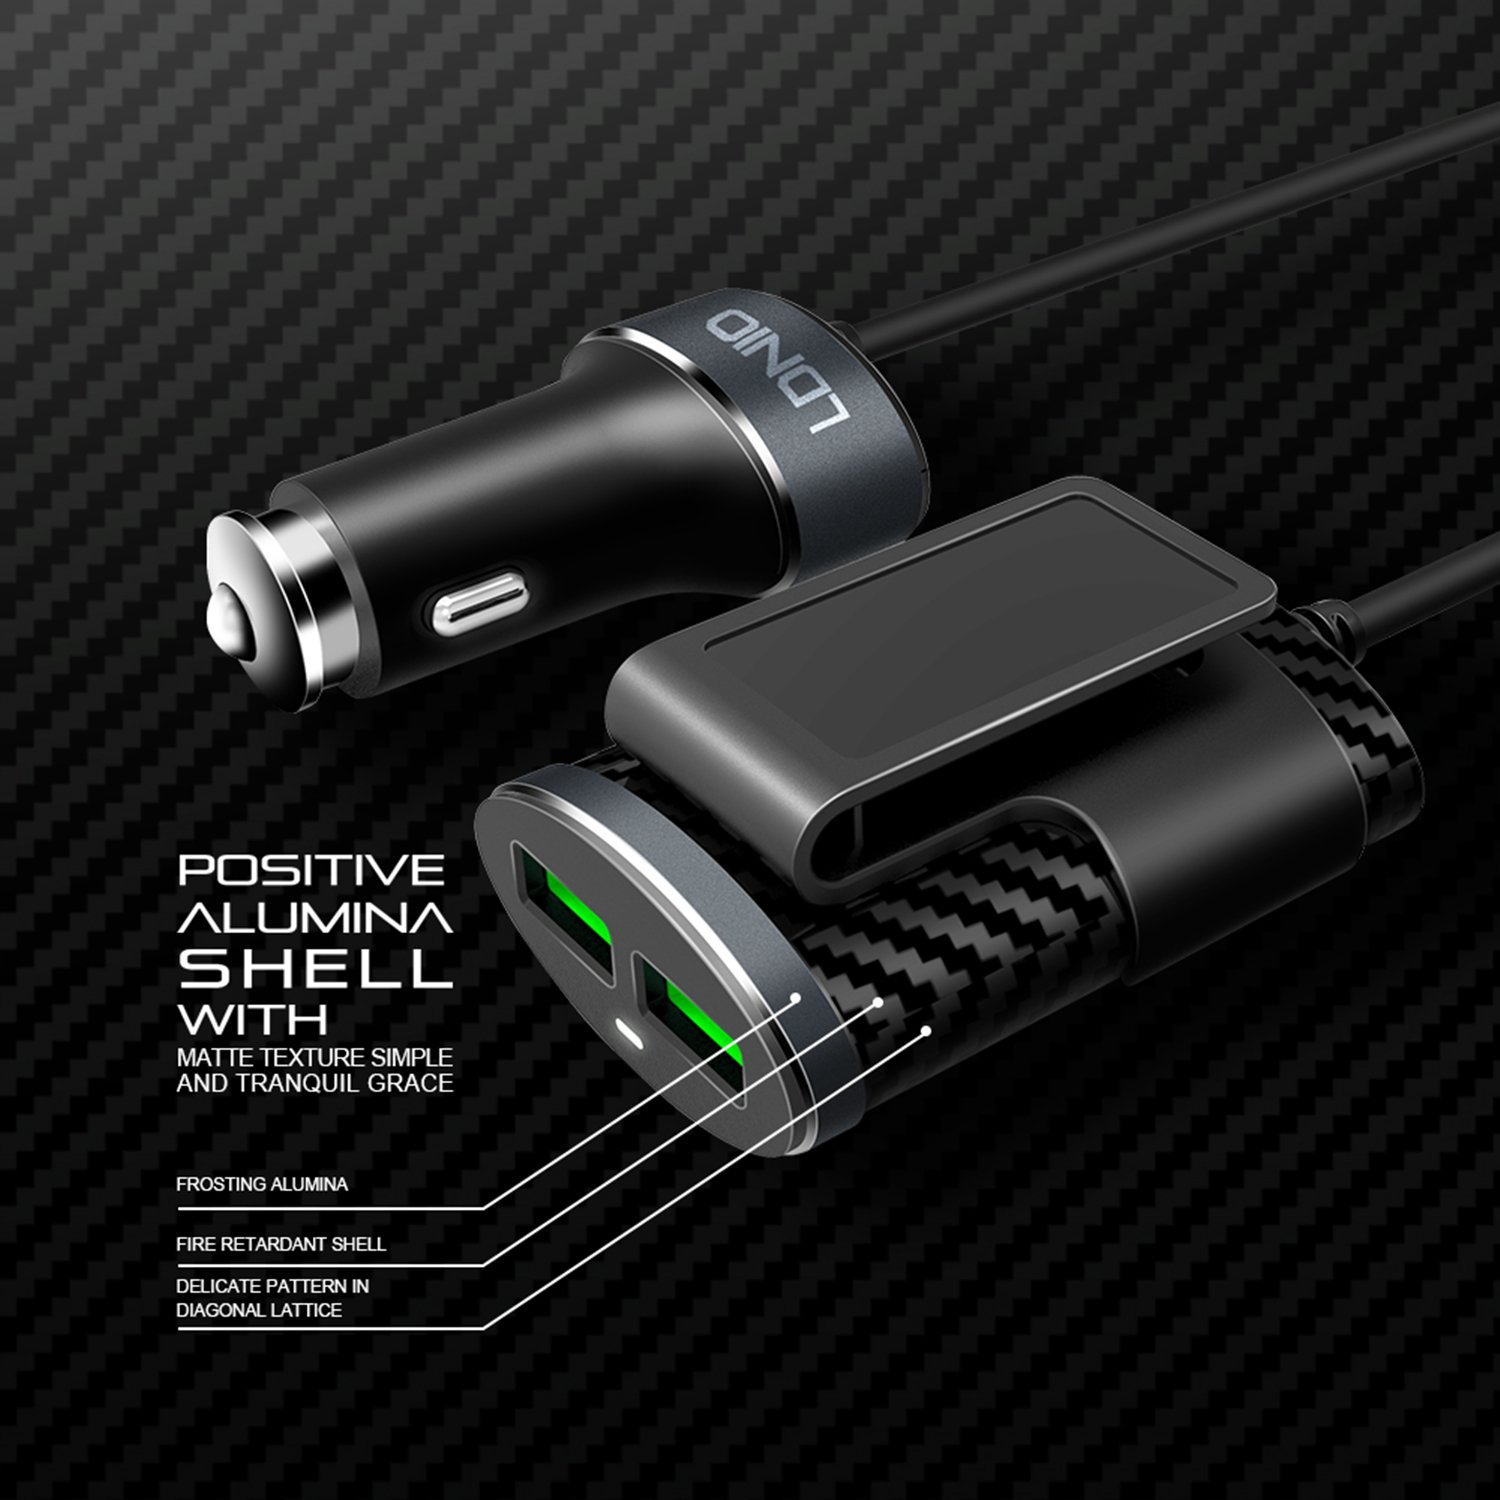 Black LDNIO 4351609343 Quick Charge 3.0 Car Charger 3 Auto-ID USB Design Adapter with Dual QC USB Ports for Sumsung Galaxy Note 8 S9 S8 Plus S7,iPhone X 8,Ipad Pro